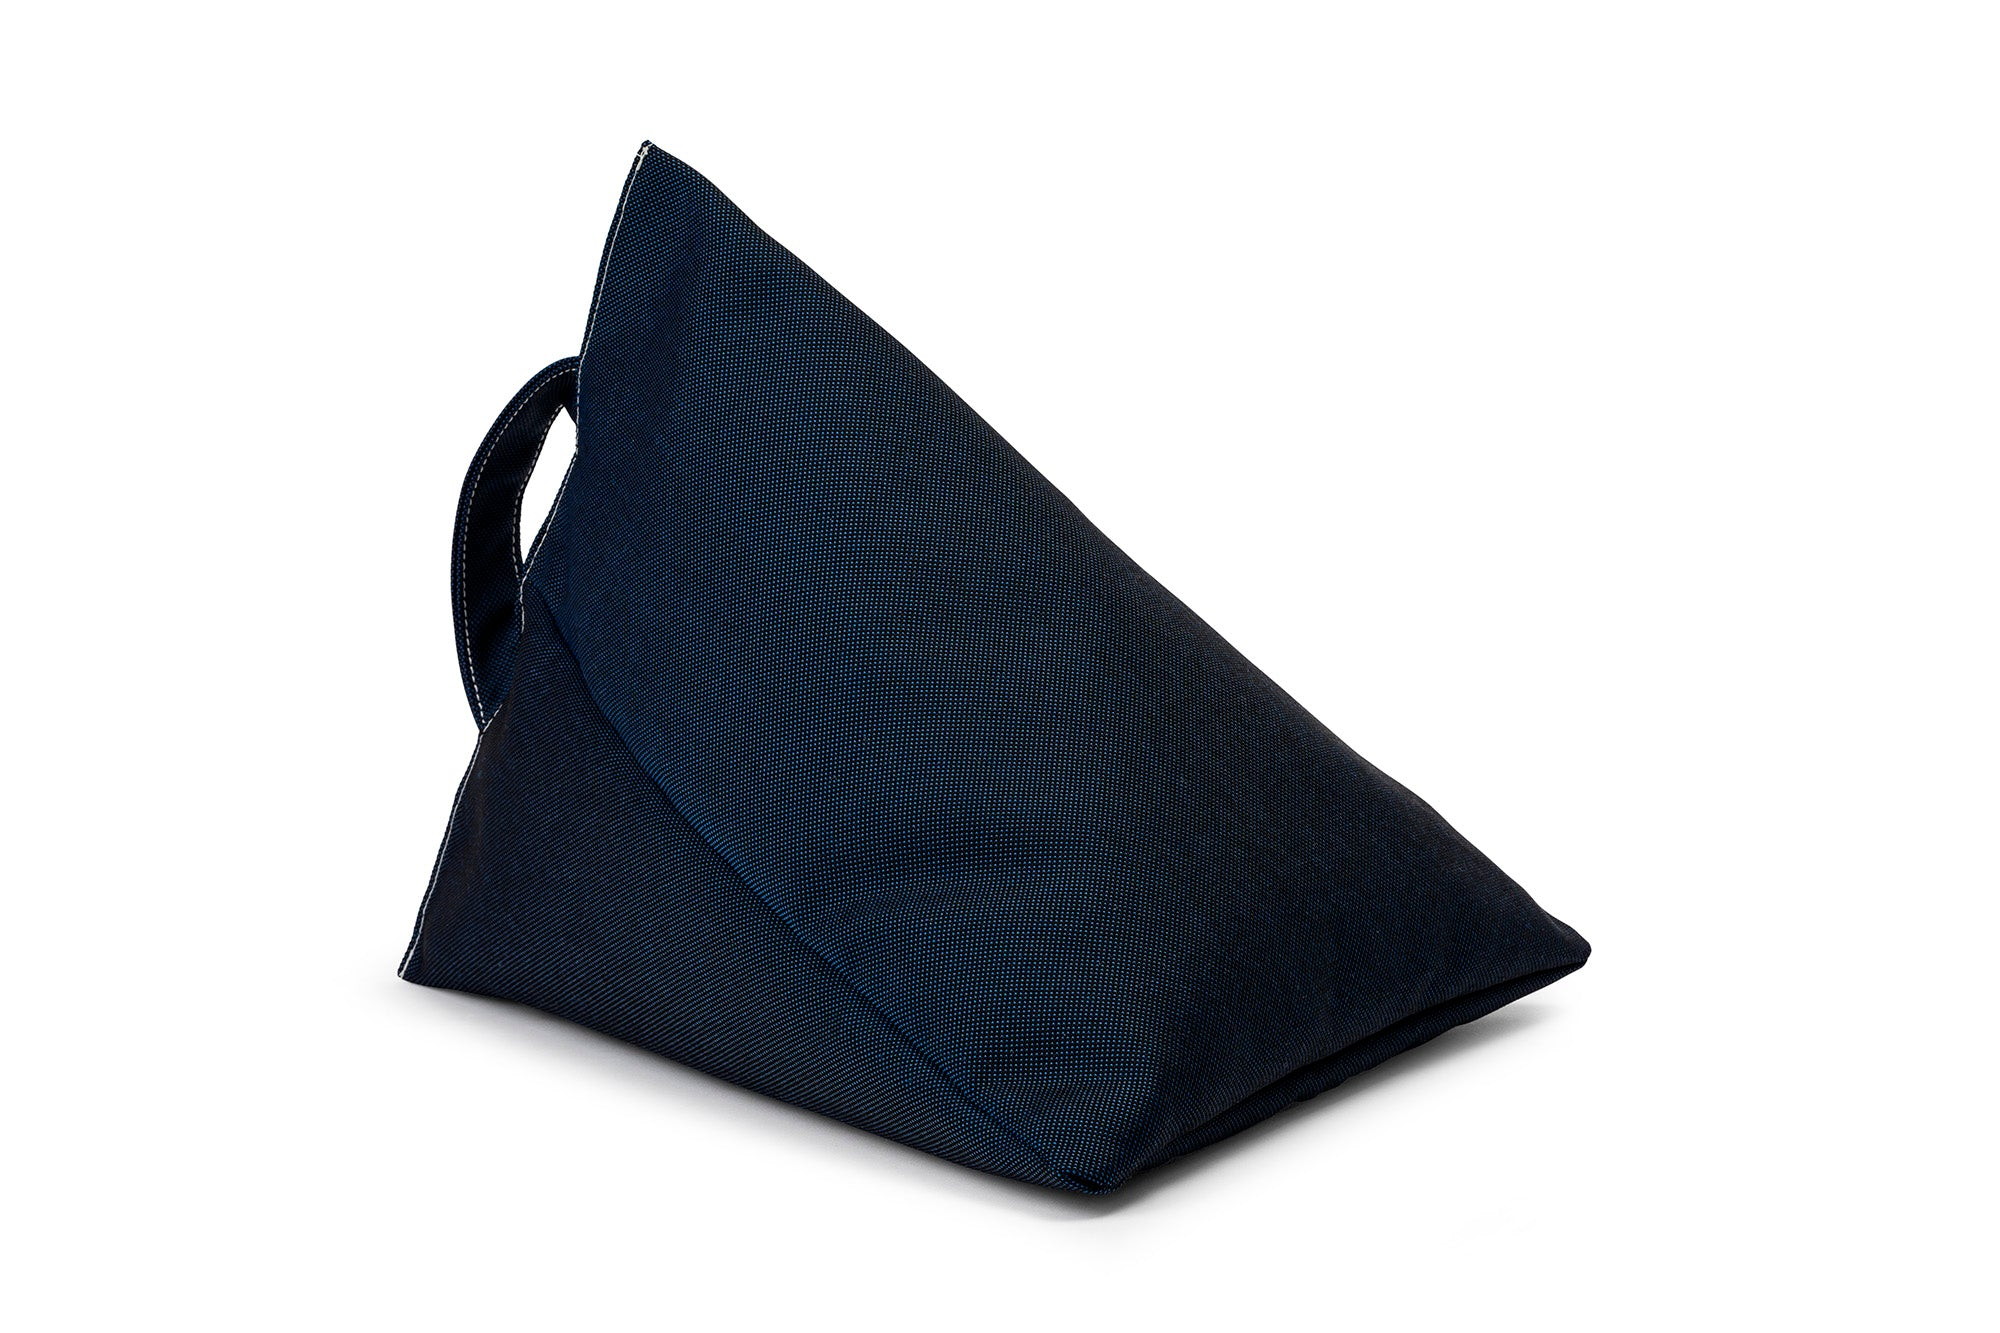 iPad, Tablet & eReader Bean Bag Stand in Plain Navy